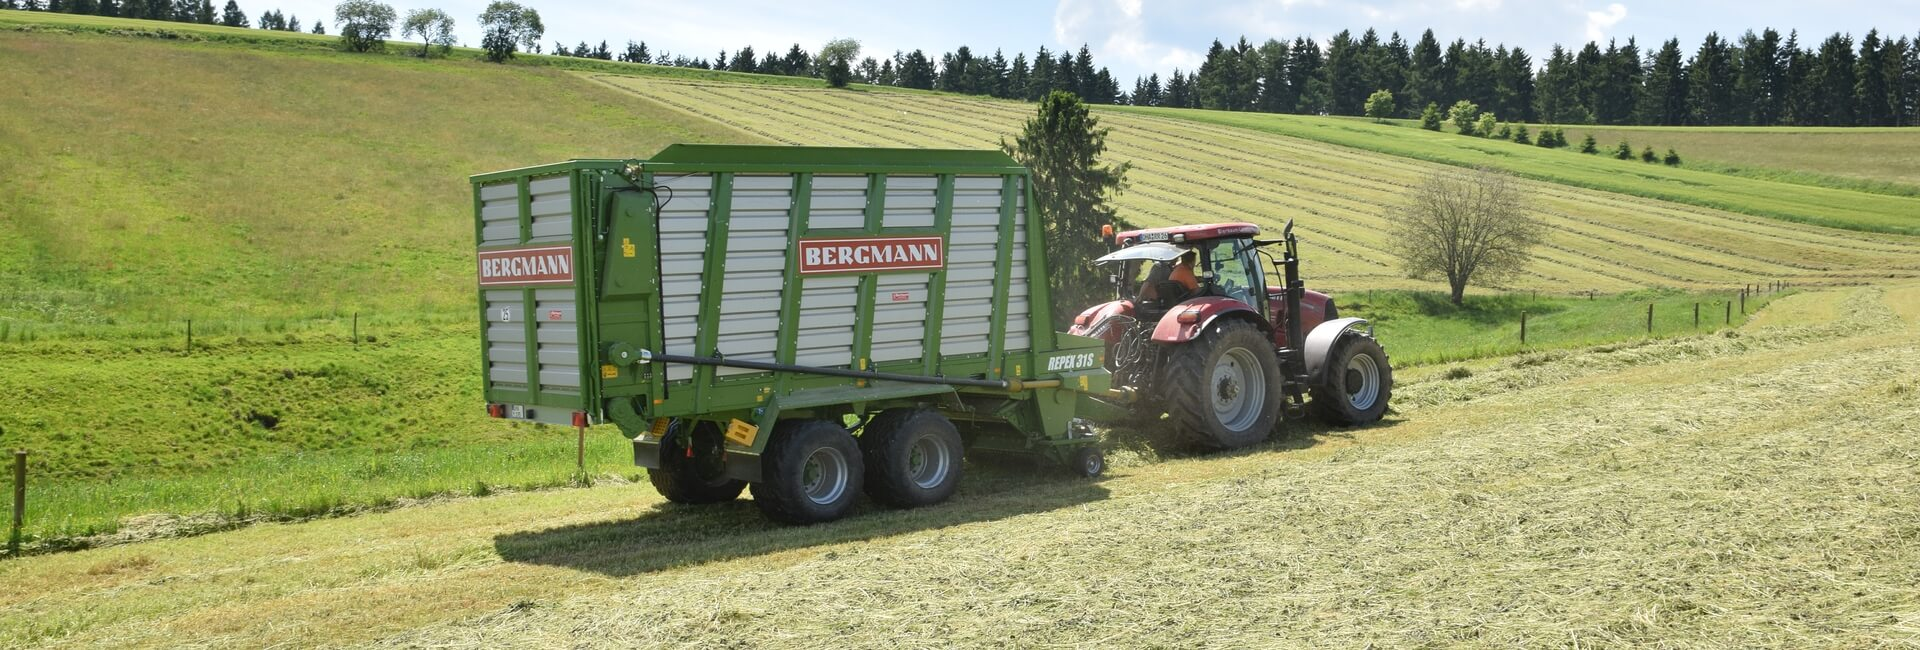 Silage wagon harvesting grass with a short chop